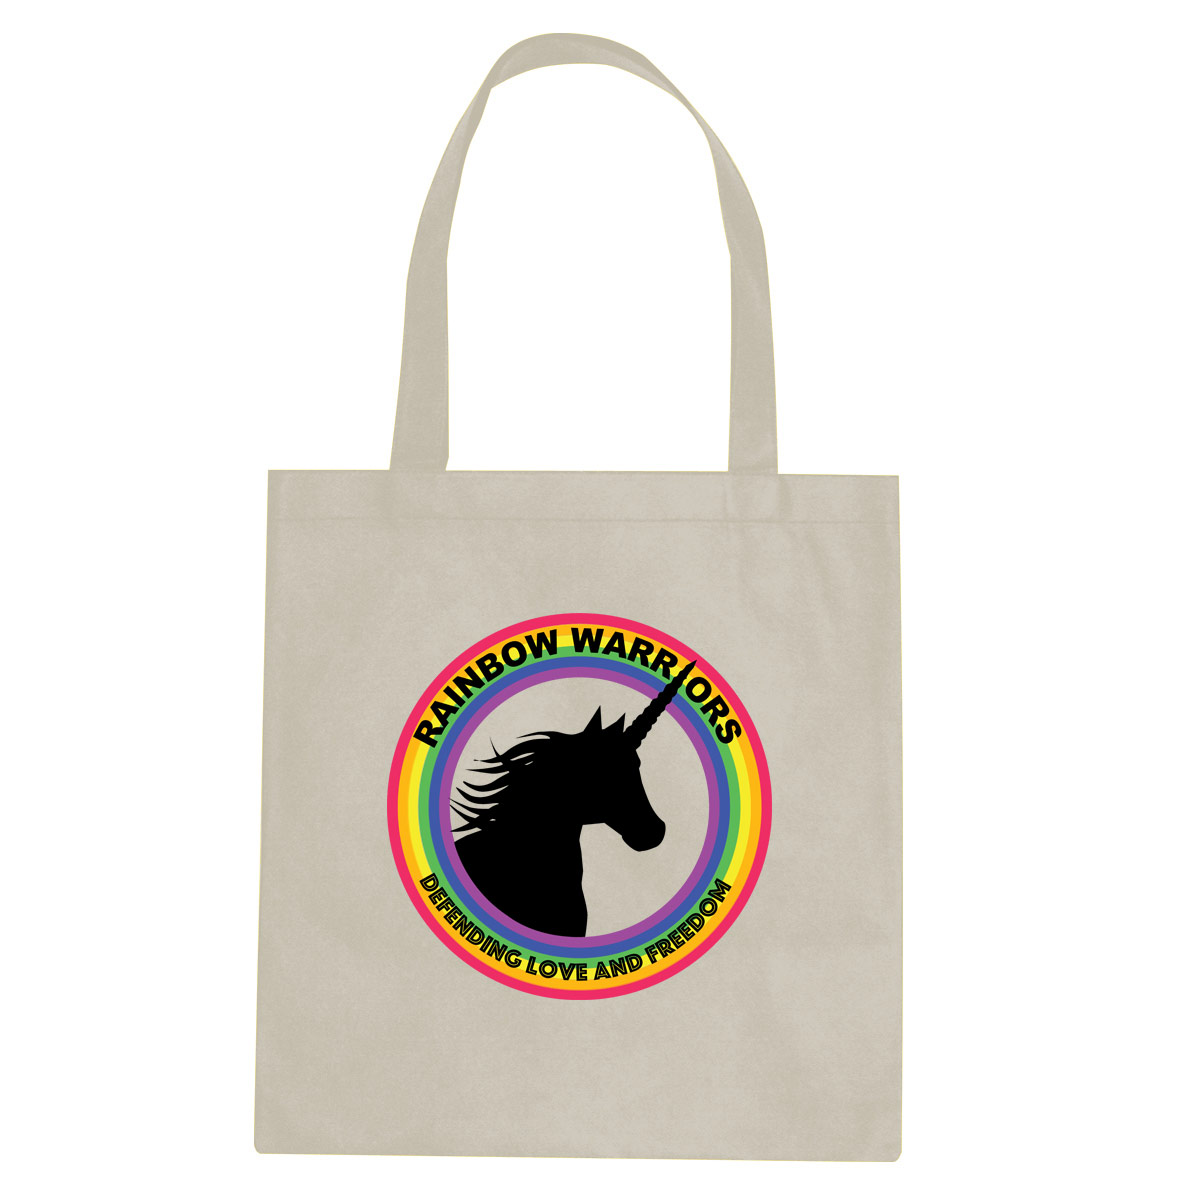 Rainbow Warriors tote bag  €14.99 Available in natural